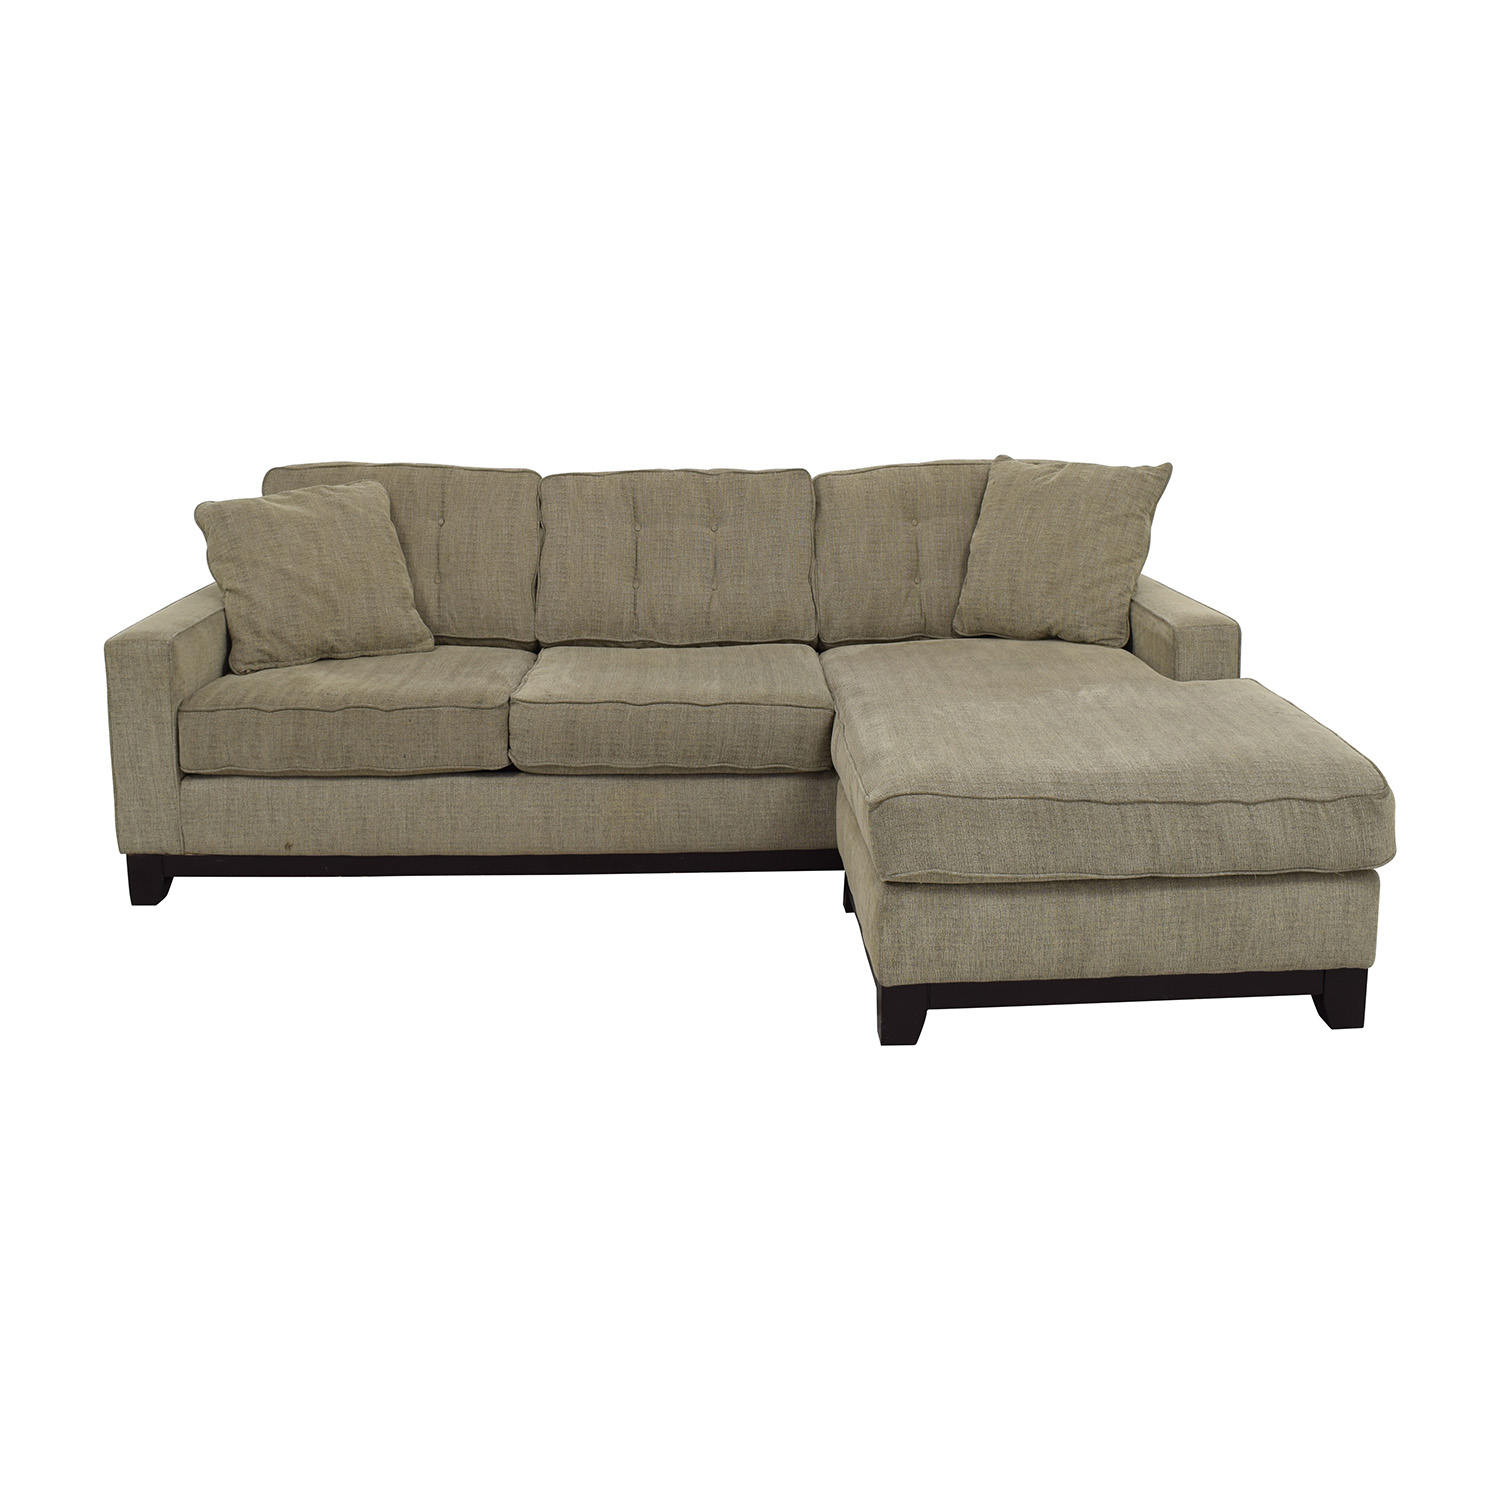 Grey L-Shaped Tufted Sectional with Right Chaise for sale